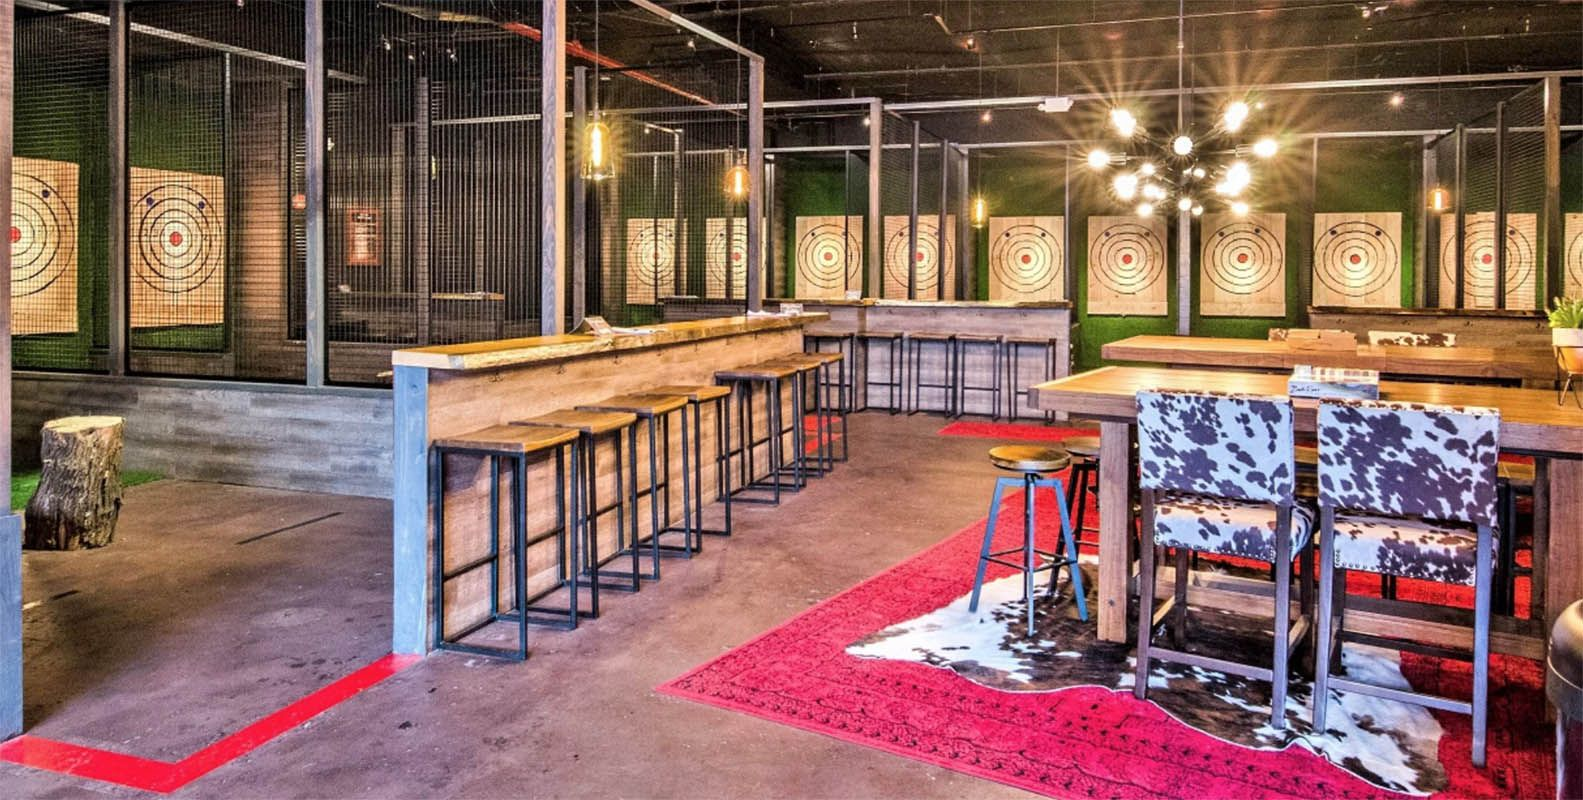 Forget Your Typical Game Of Darts Gowanus Brooklyn Is Now Home To A 7 000 Square Foot Bar That Specializes In The Competitive Spo Axe Outdoor Wood Bar Design